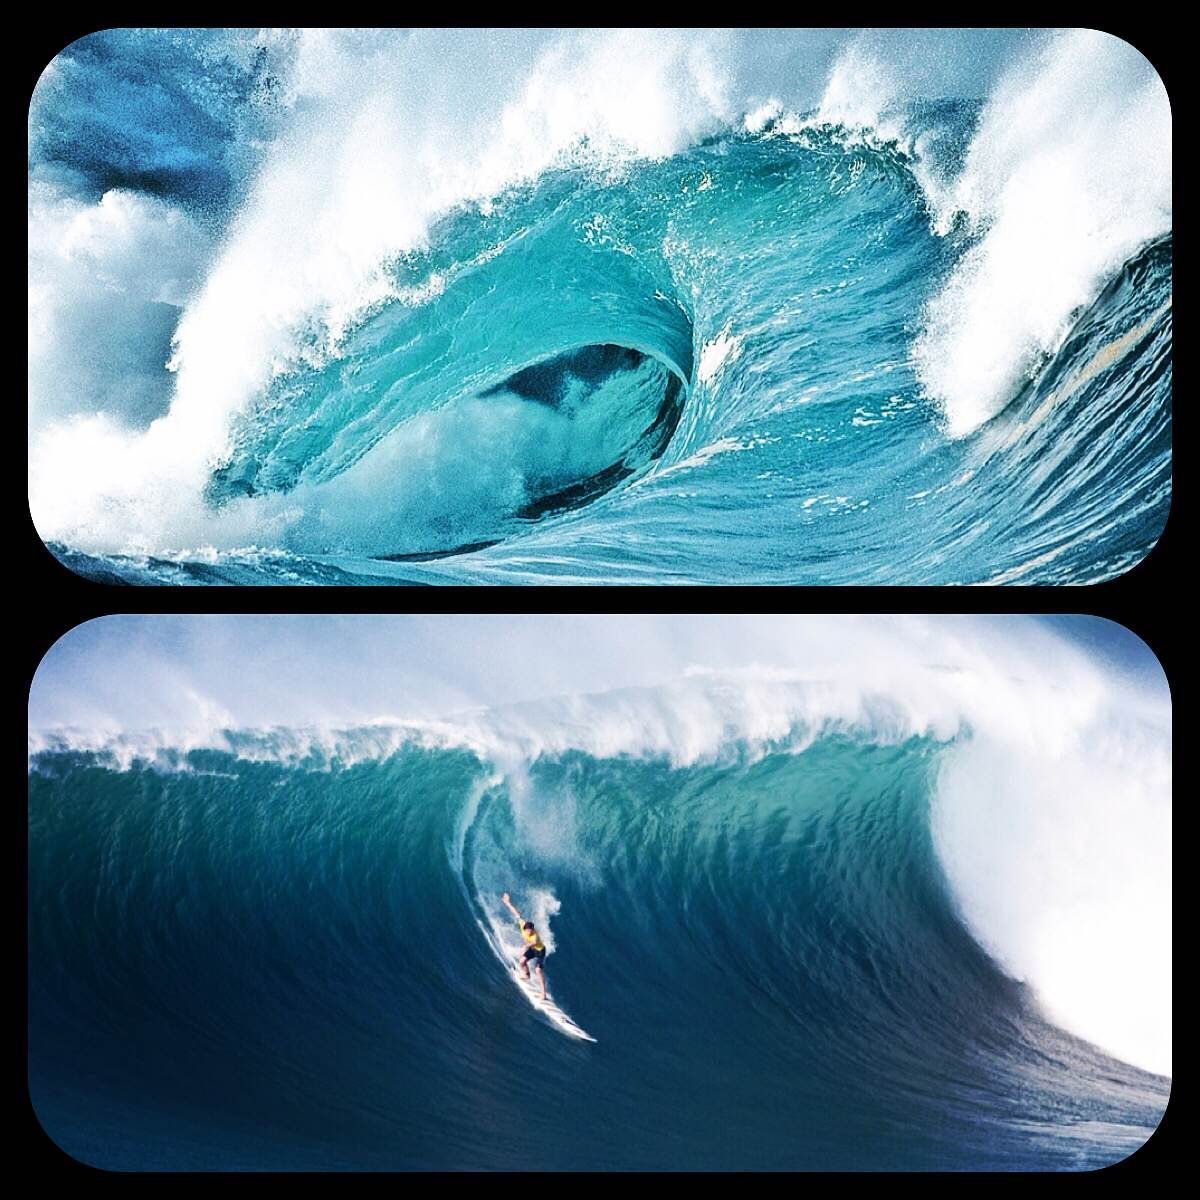 Waimea bay hawaii is one of the first recognised and most famous waimea bay hawaii is one of the first recognised and most famous of all big wave surf spots in the world waimea is a right point break that holds swells publicscrutiny Images